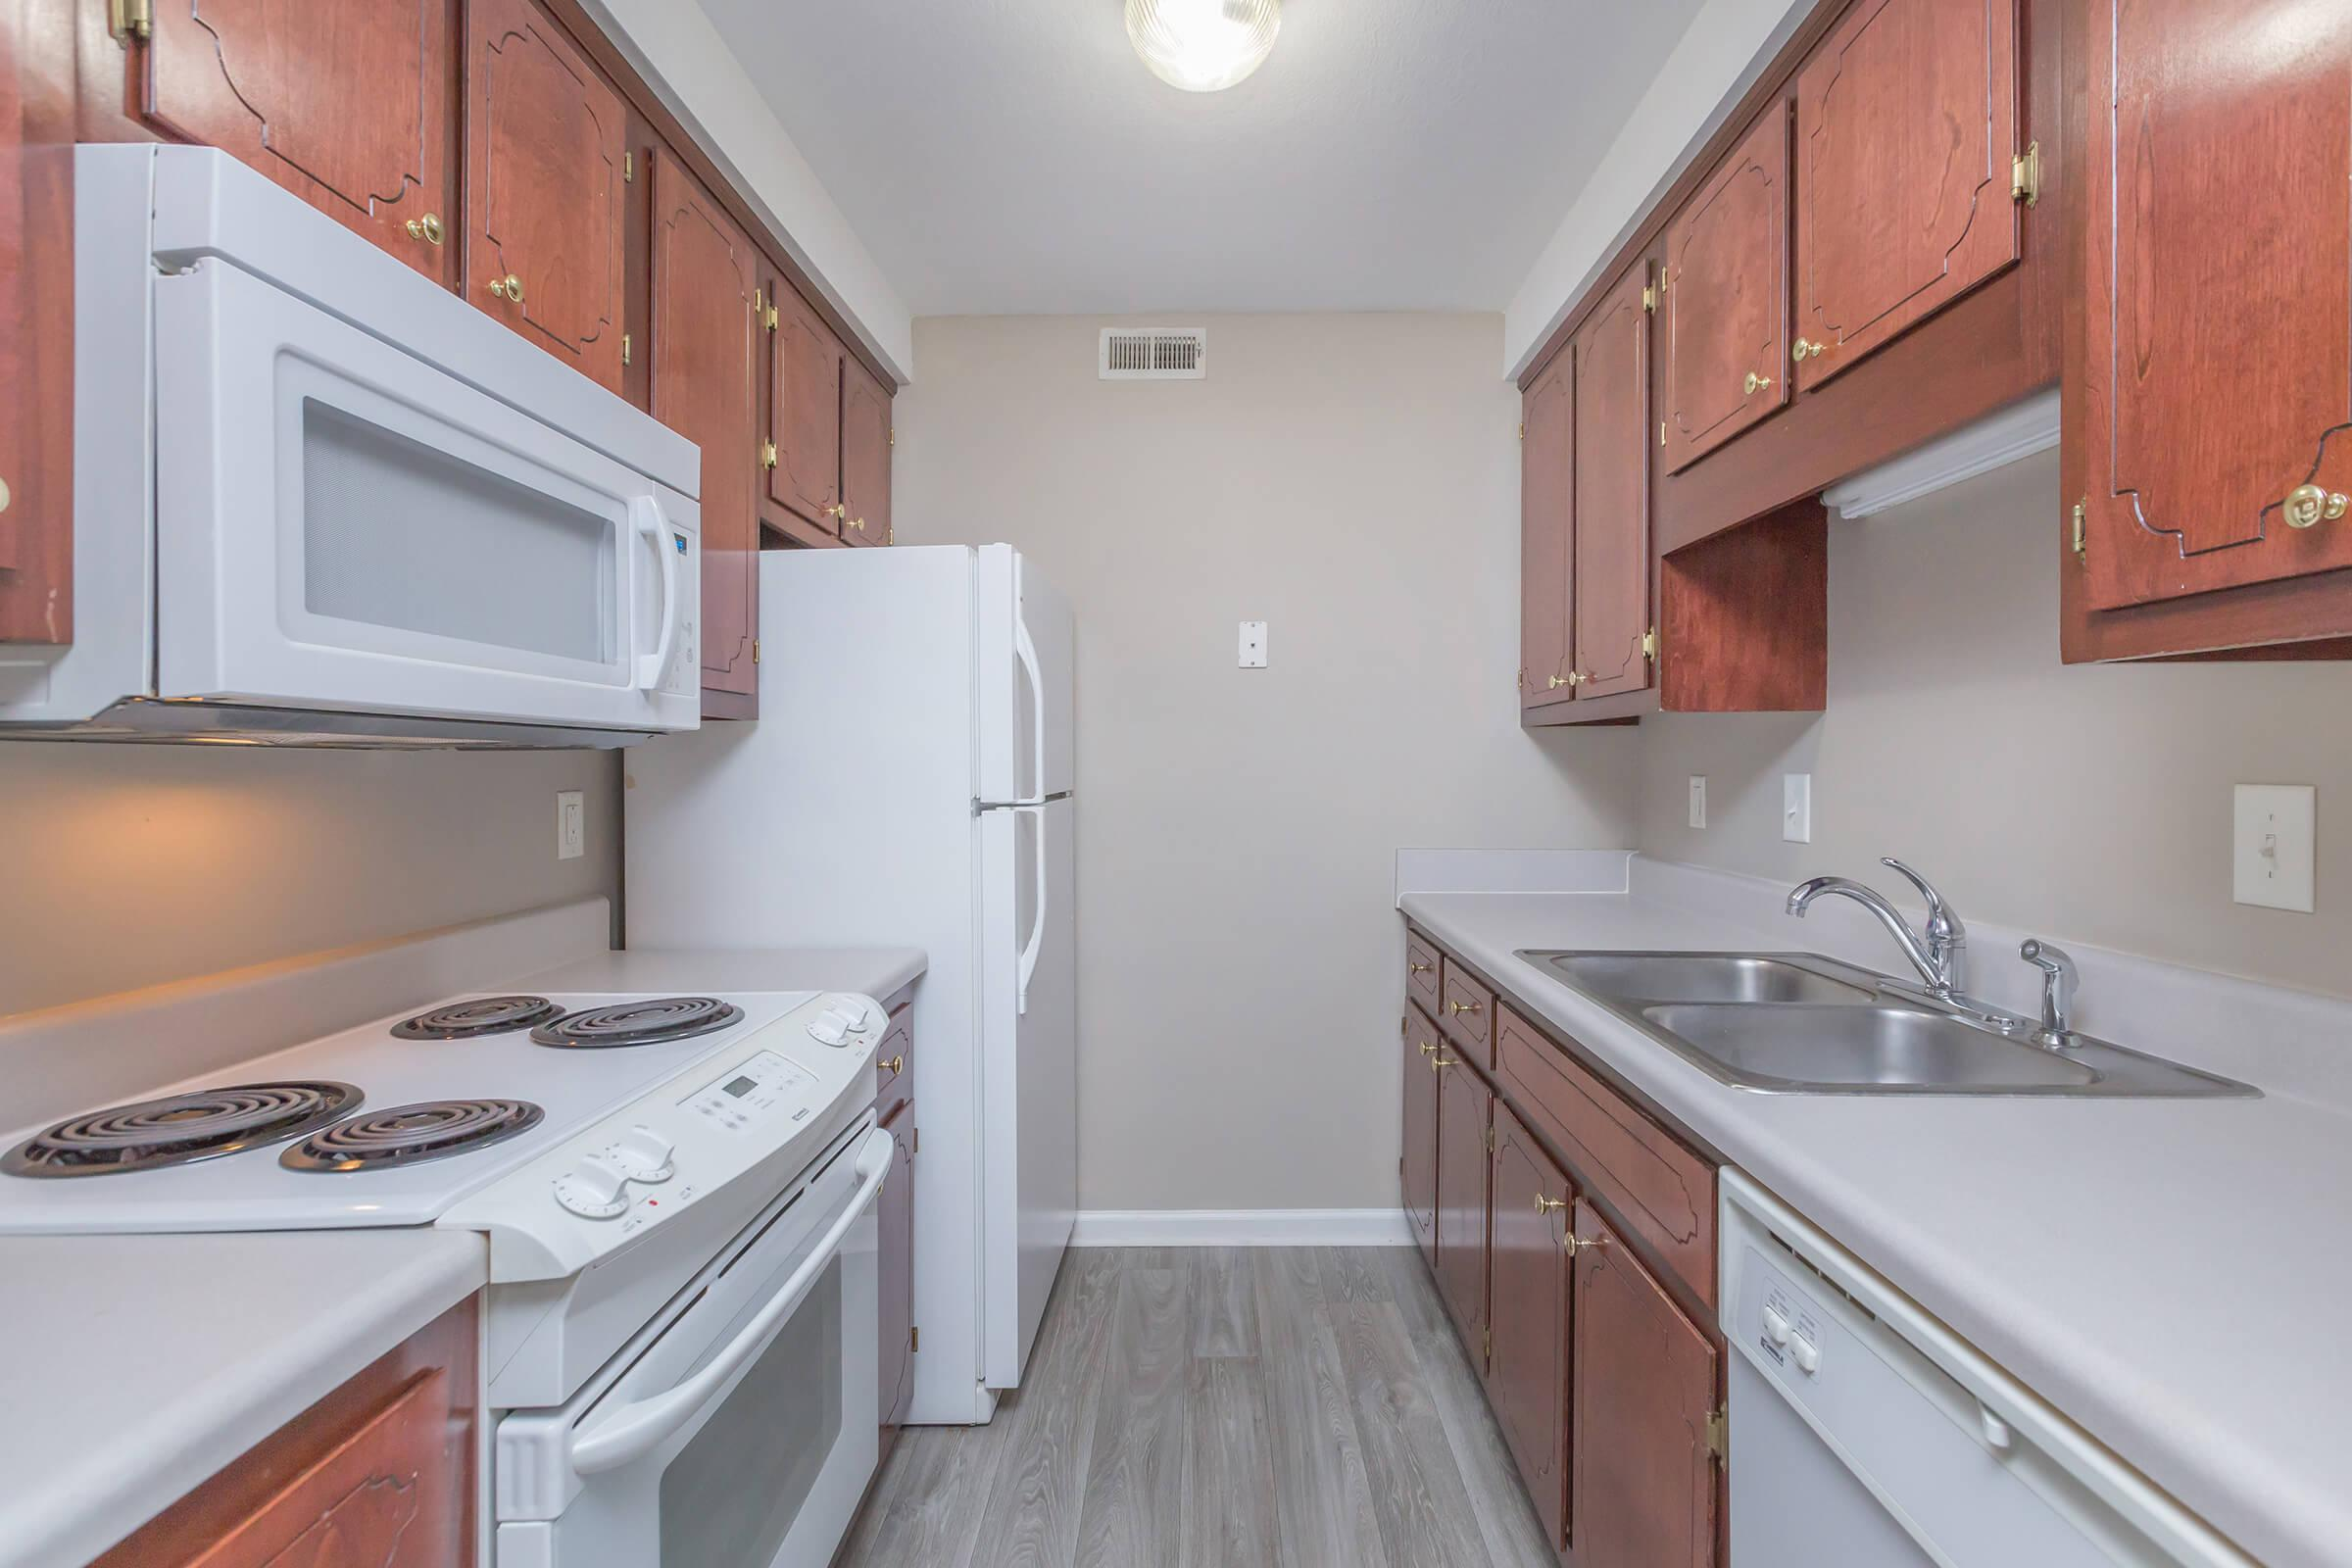 SummerTrees Apartments Has All-Electric Kitchens